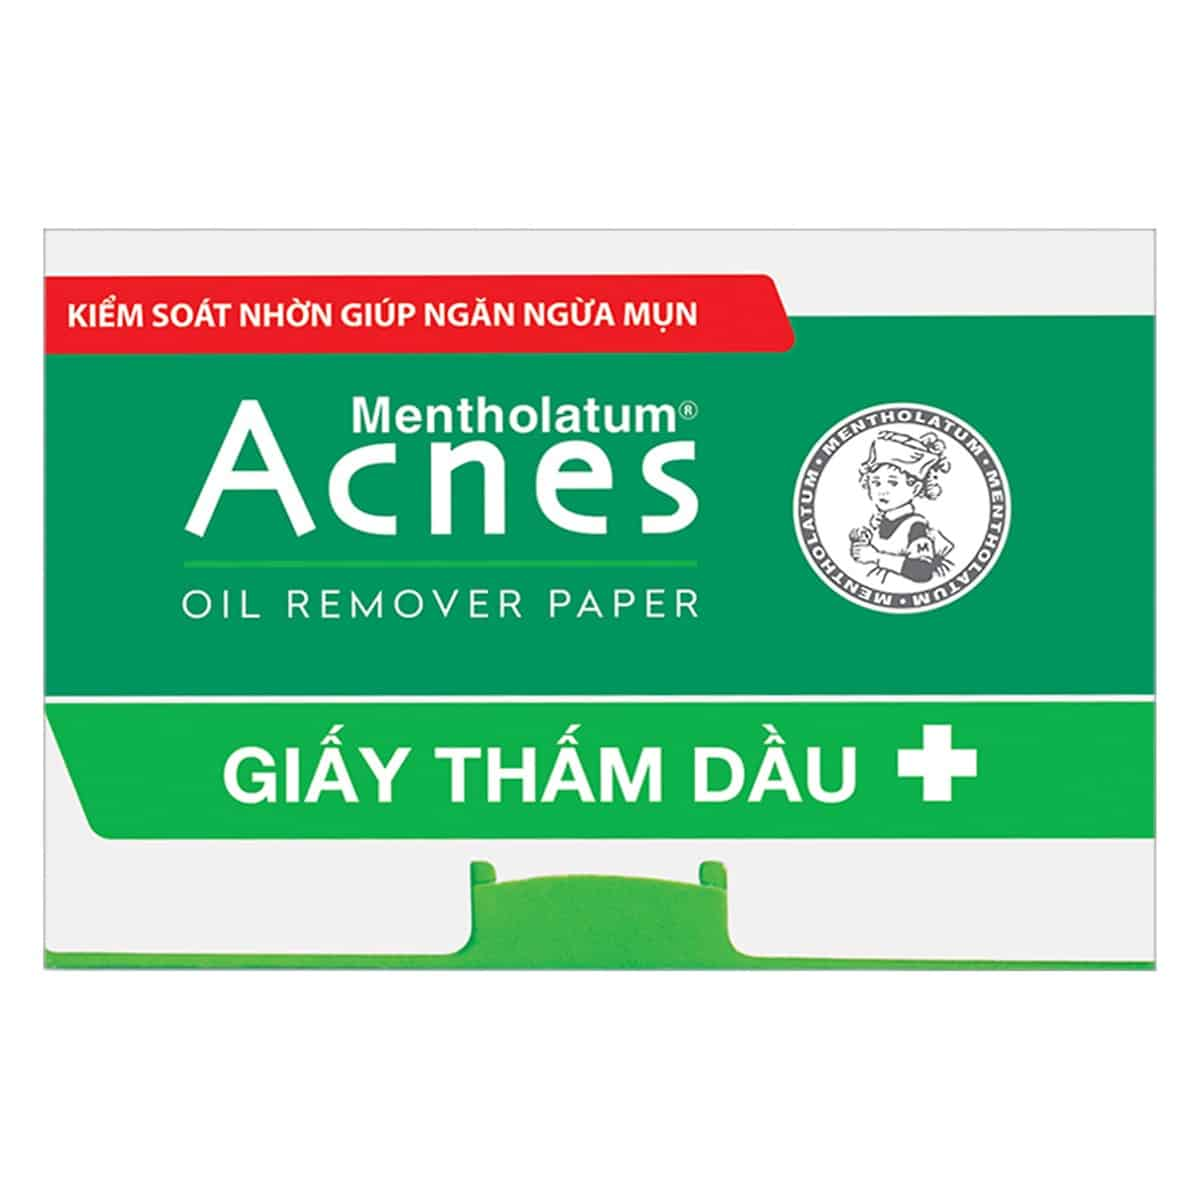 Giấy thấm dầu Acnes Oil Remover 100 tờ